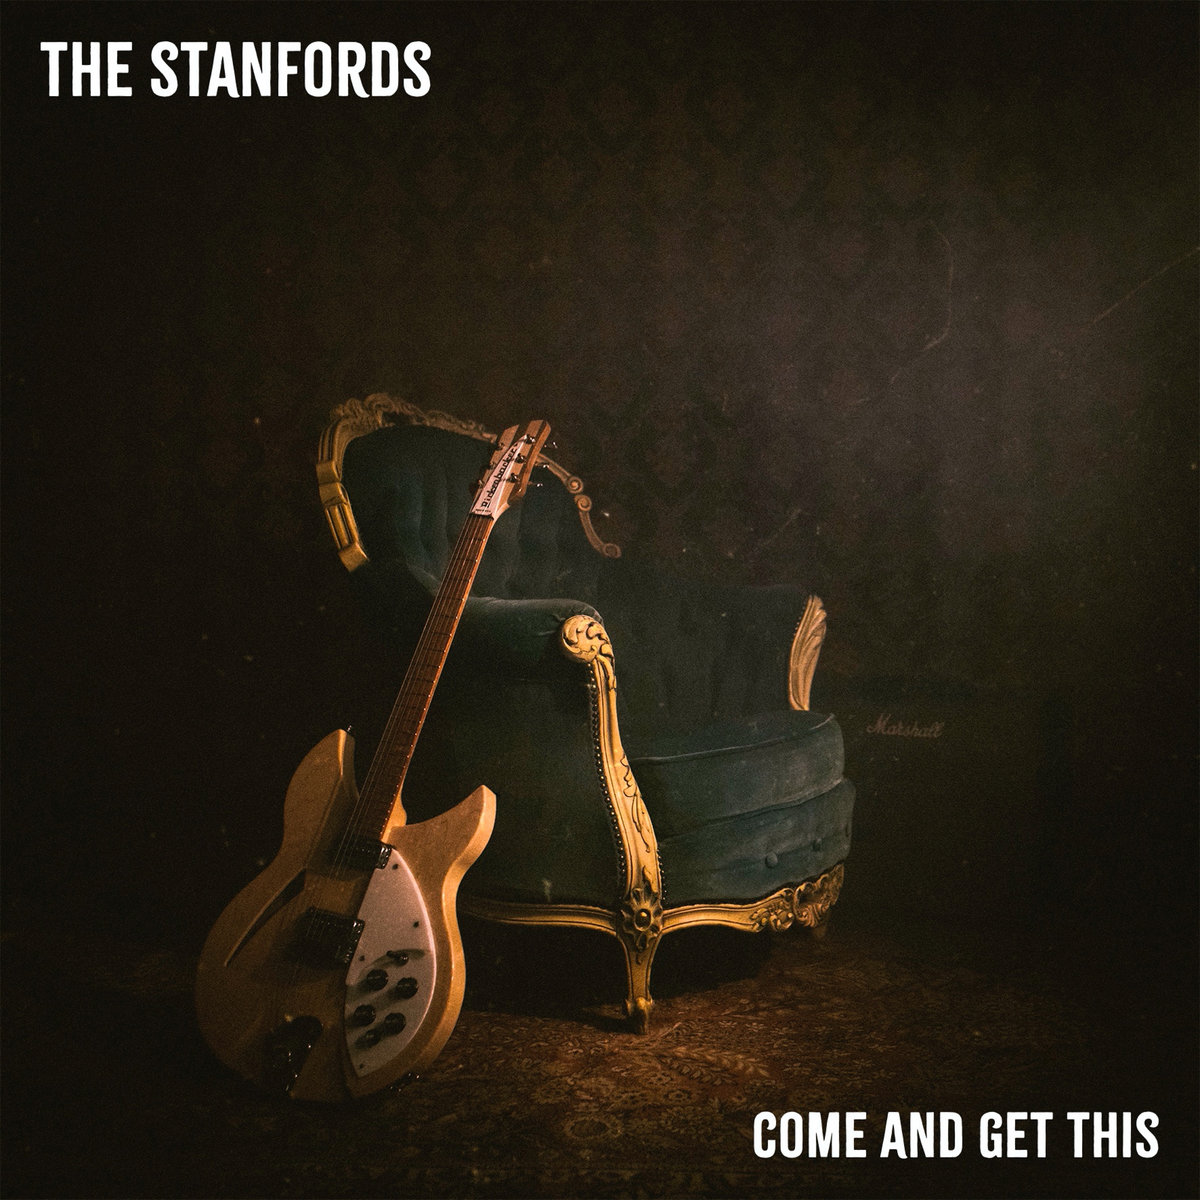 The Stanfords – Come and Get This